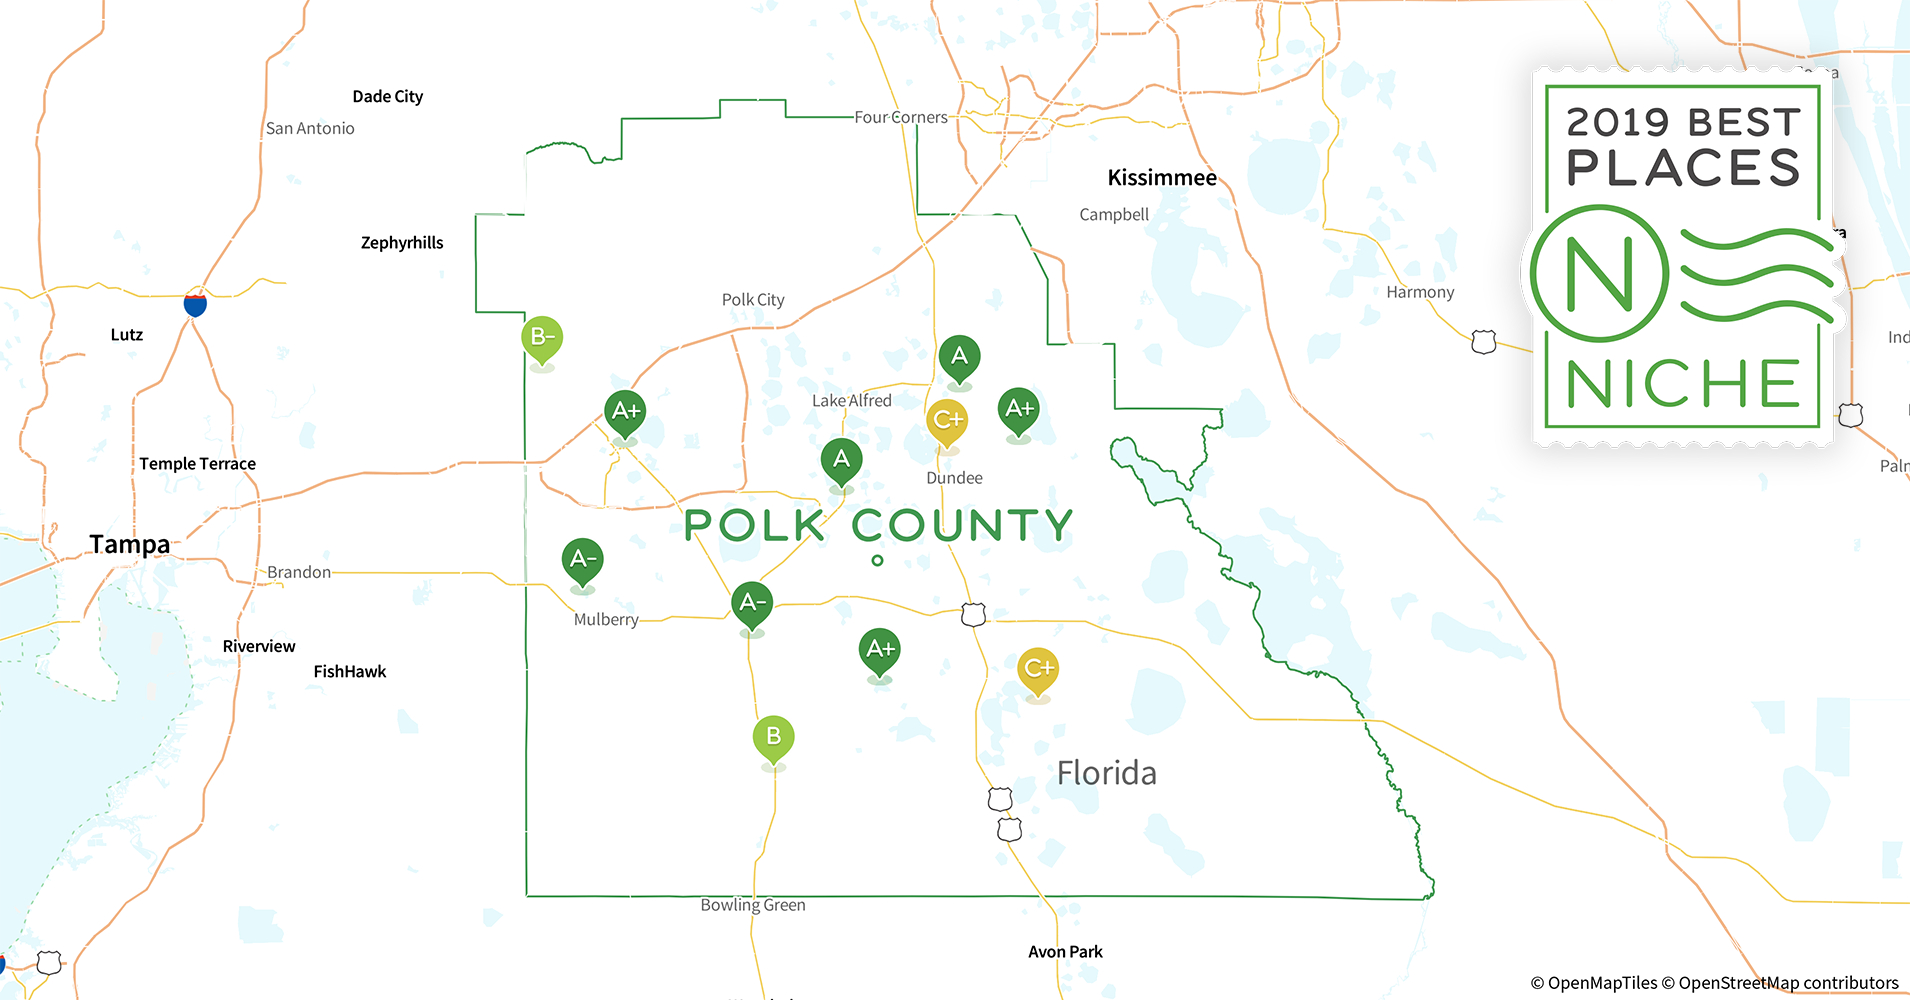 2019 Best Zip Codes To Buy A House In Polk County, Fl - Niche - Polk County Florida Parcel Map